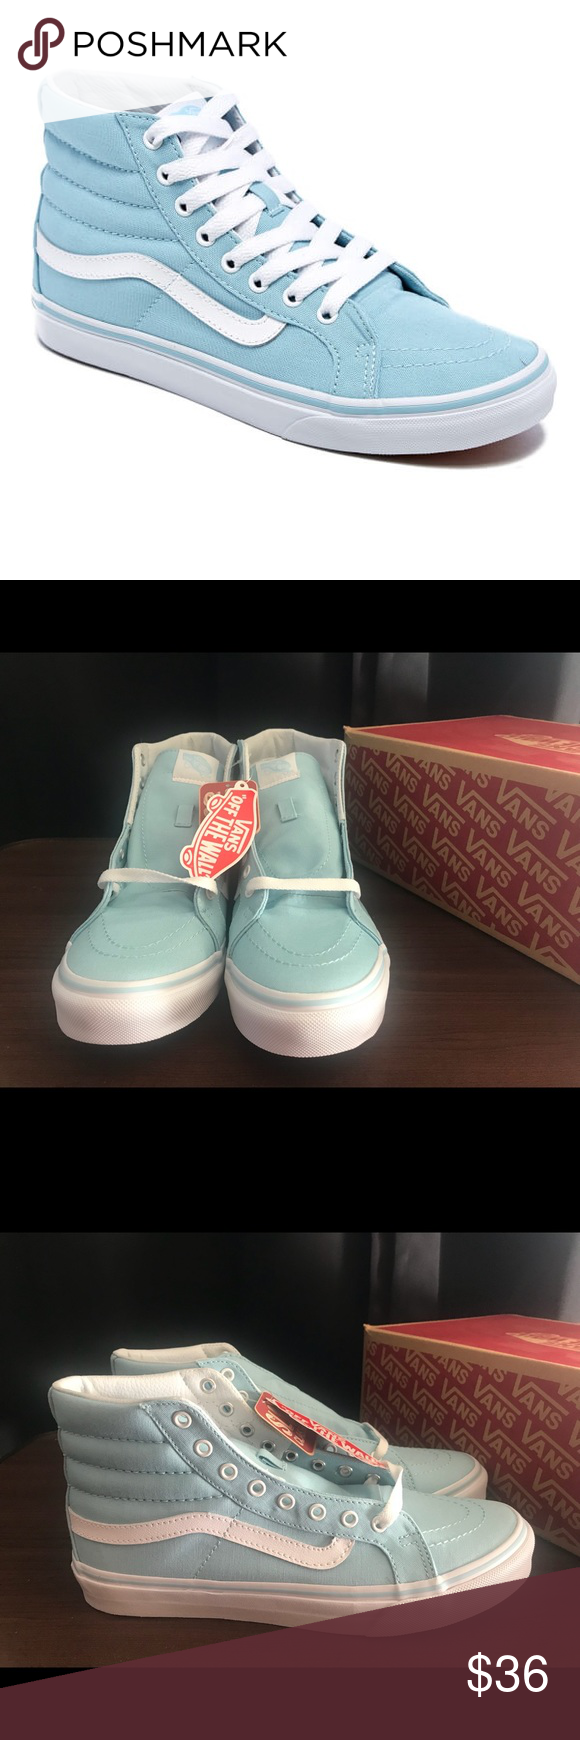 8574dbb561 Vans Sk8-Hi Slim Vans Sk8-Hi Slim Crystal Blue True White Women Sz 10 Vans  Shoes